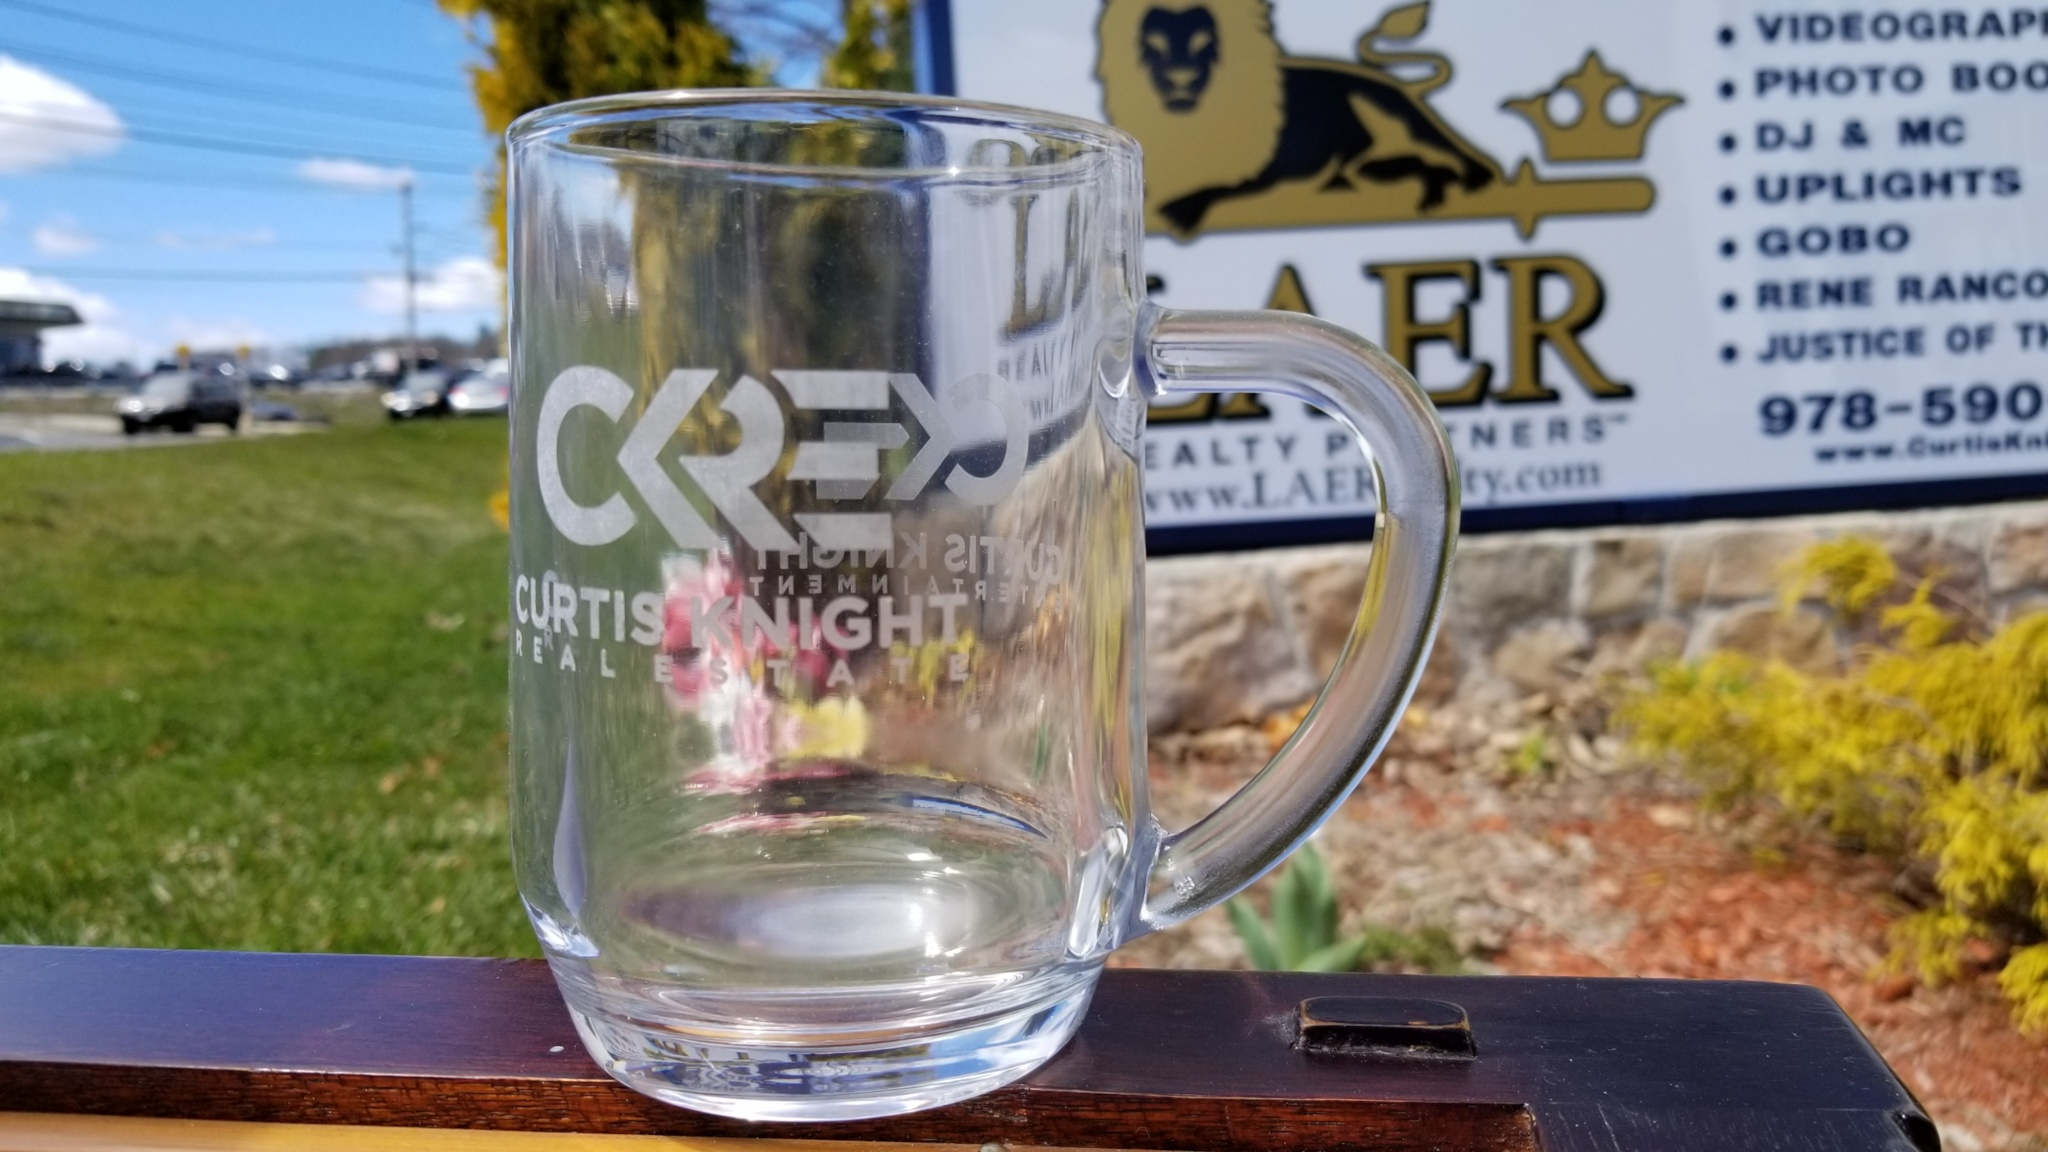 Curtis Knight Real Estate LAER Realty 20 Ounce Mug